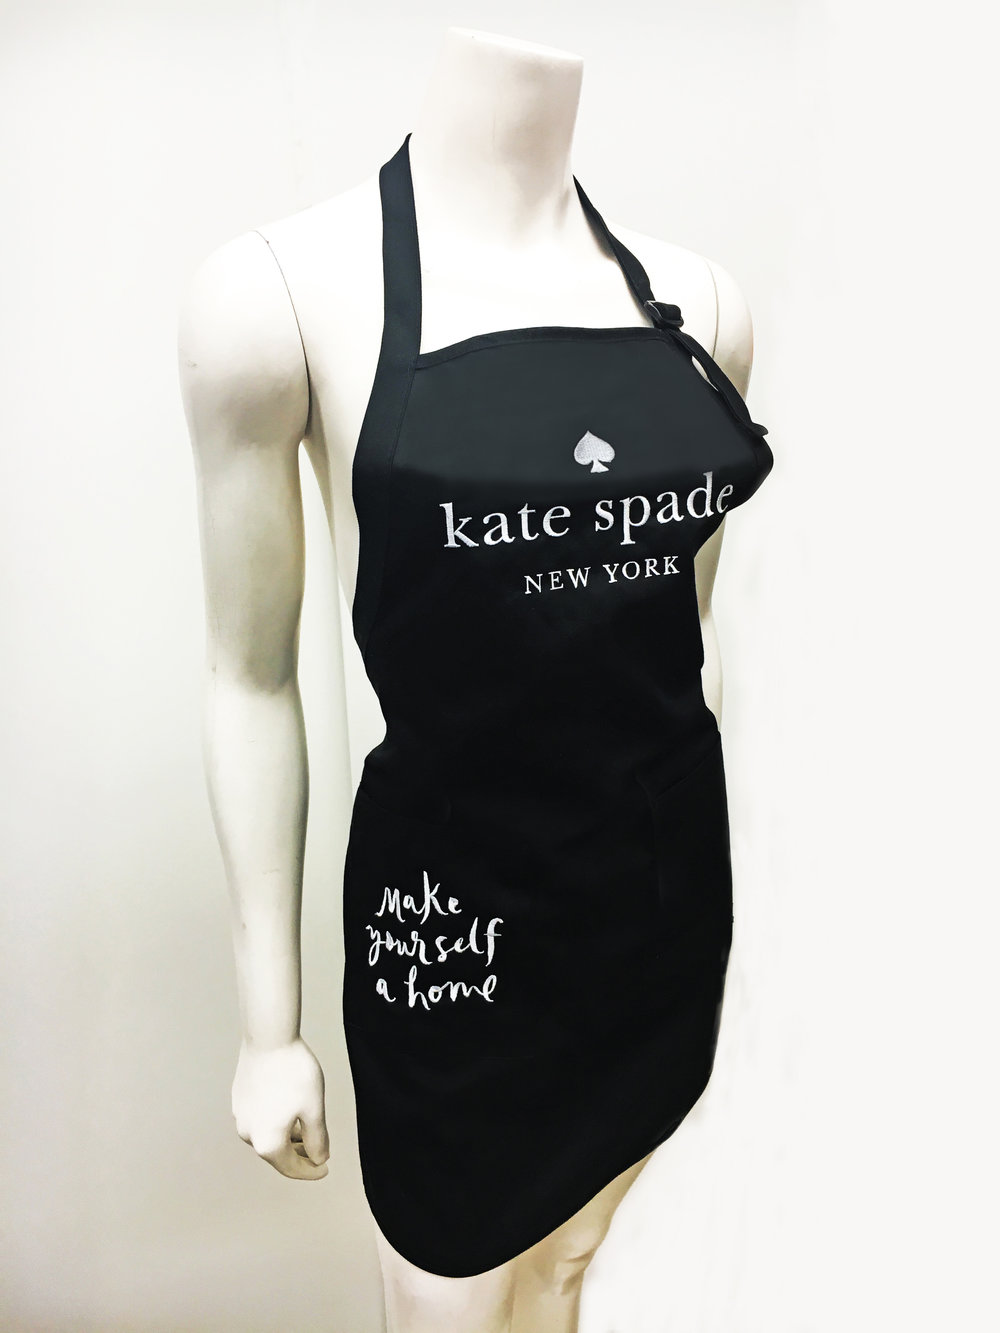 Apron for Kate Spade